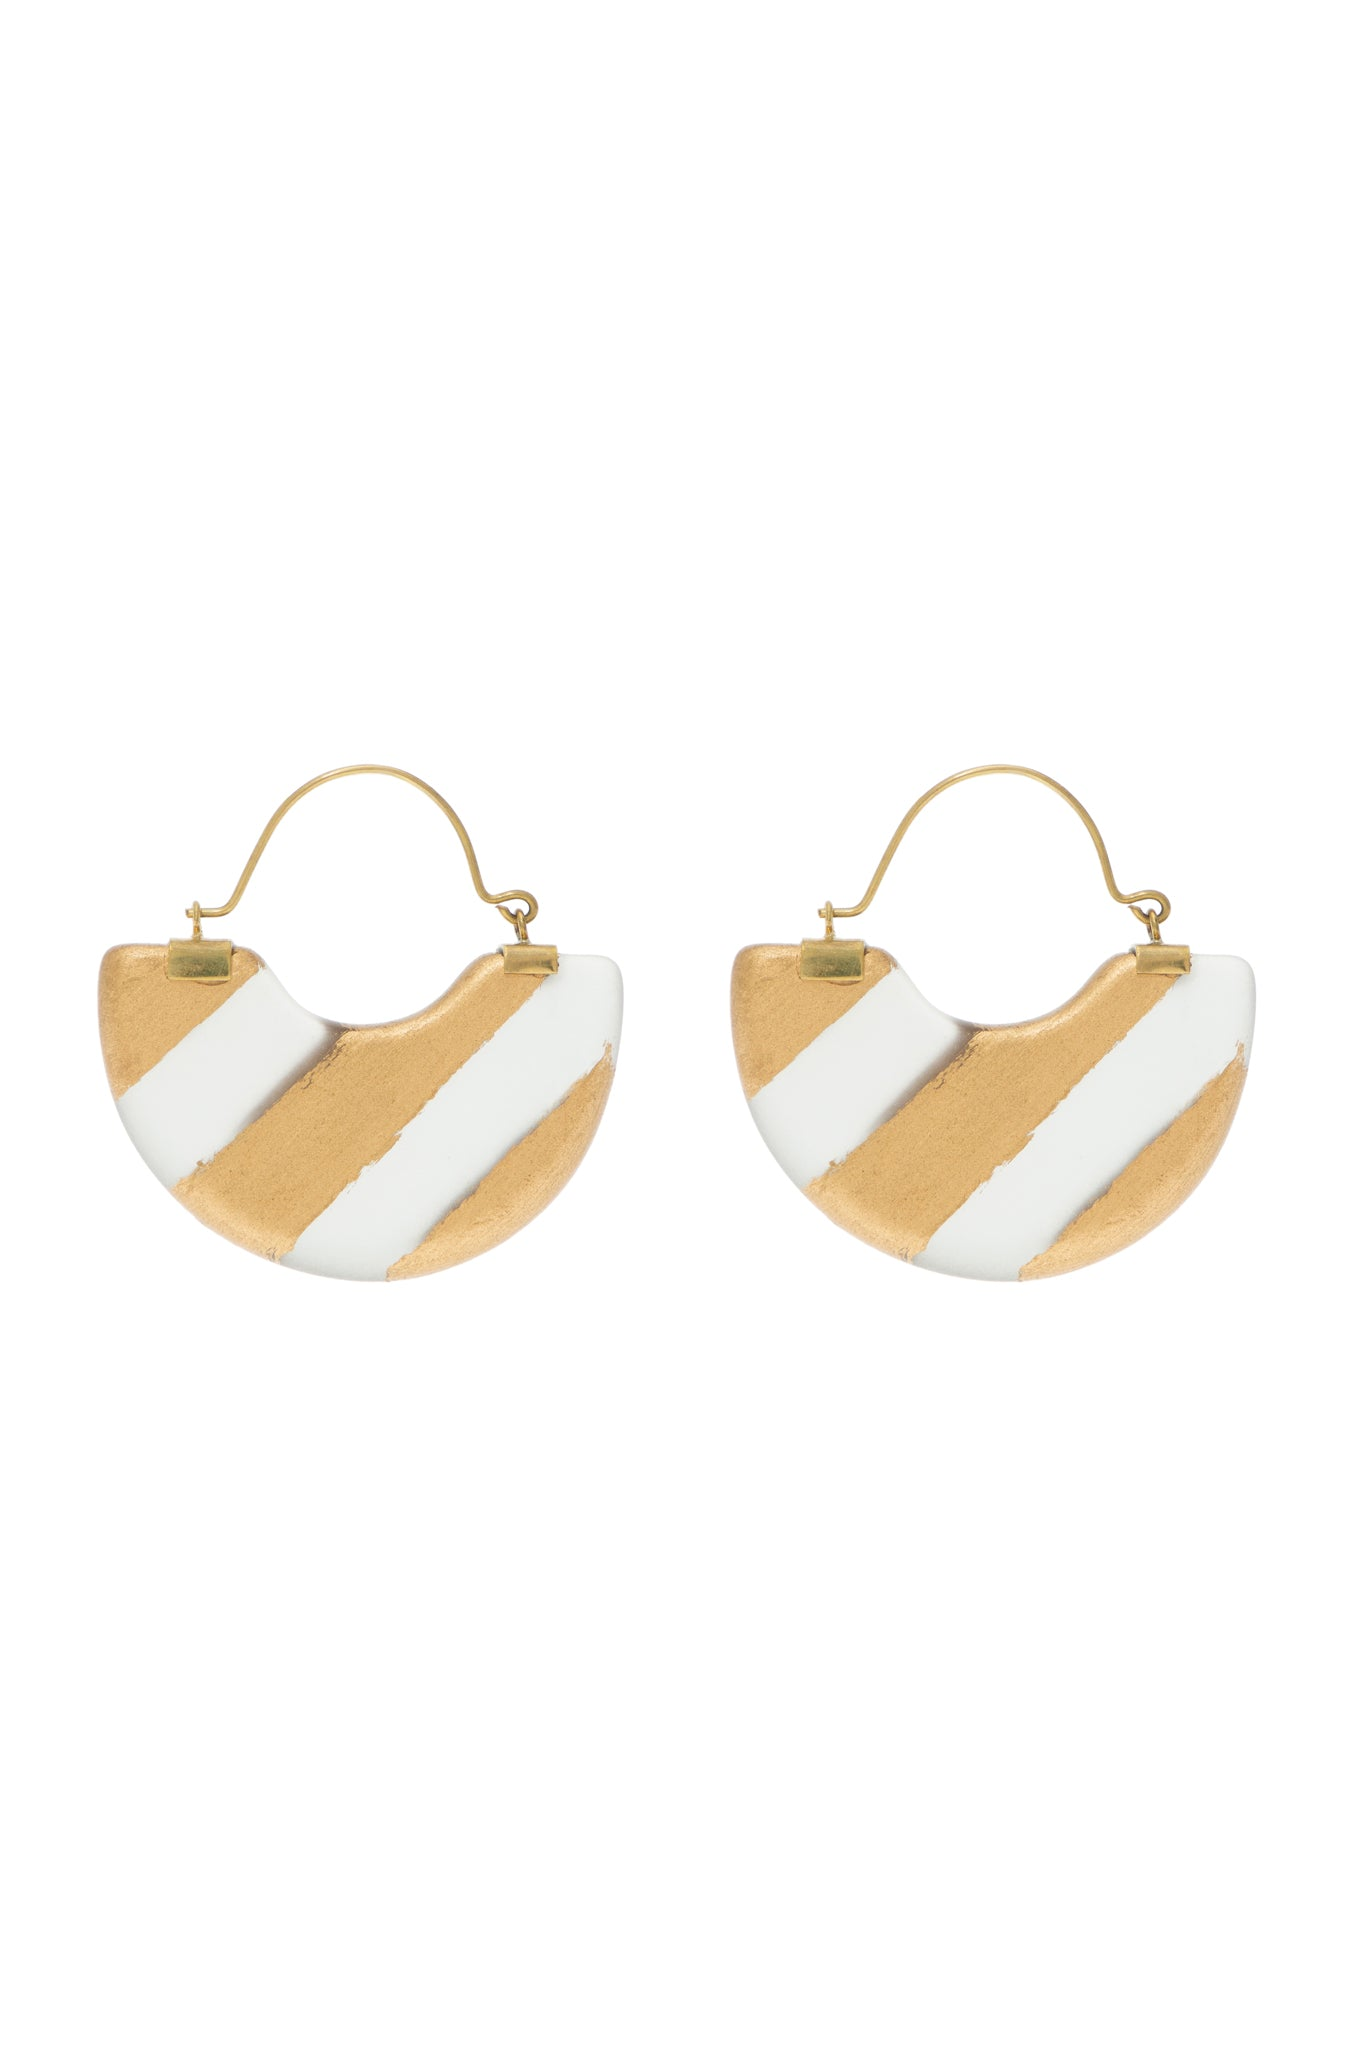 STRIPED HALF MOON EARRINGS